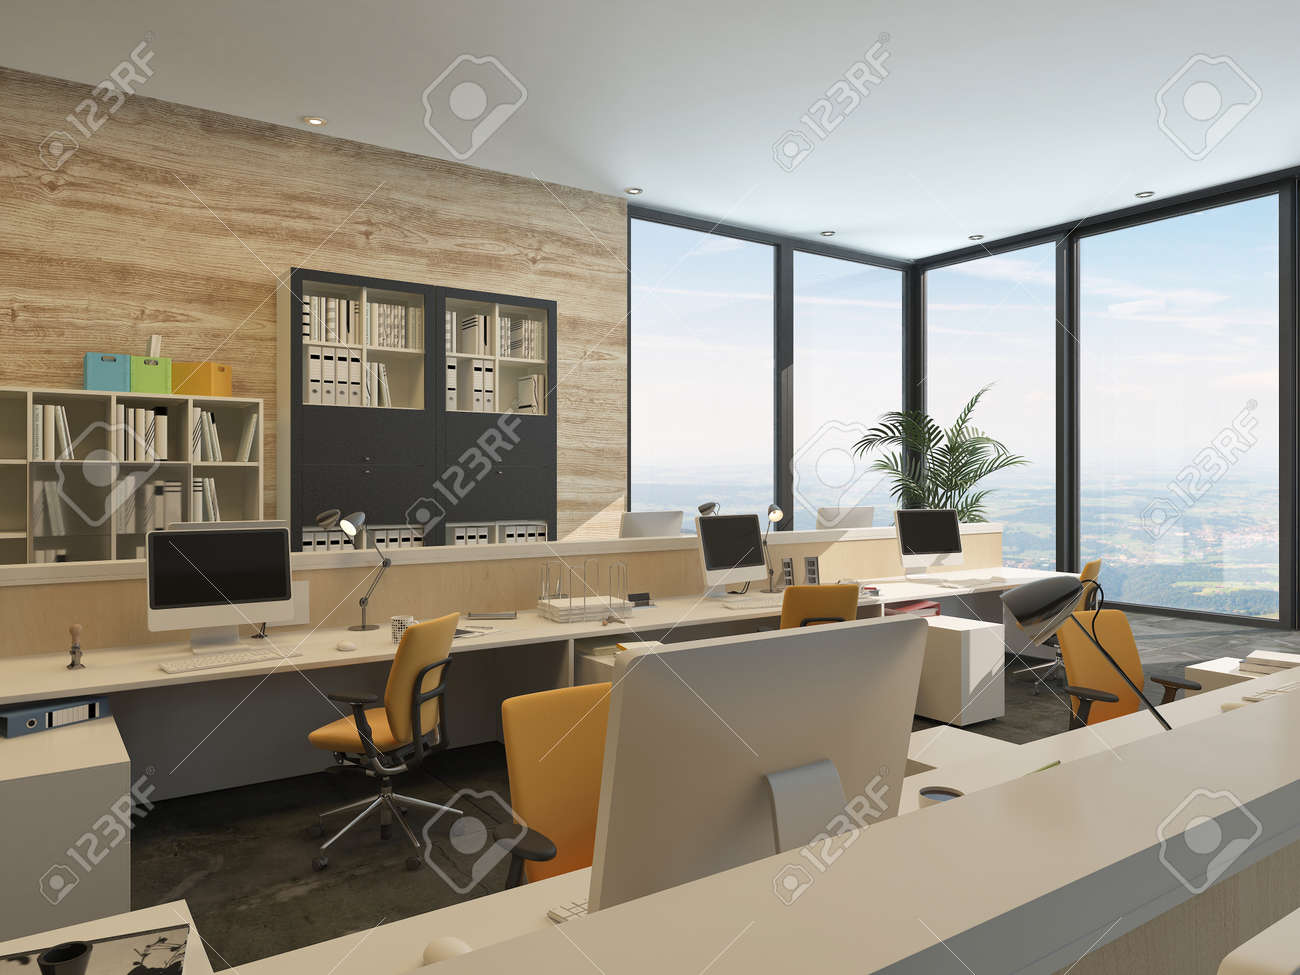 modern minimalist office. modern minimalist office with work stations and large windows in high rise building stock photo